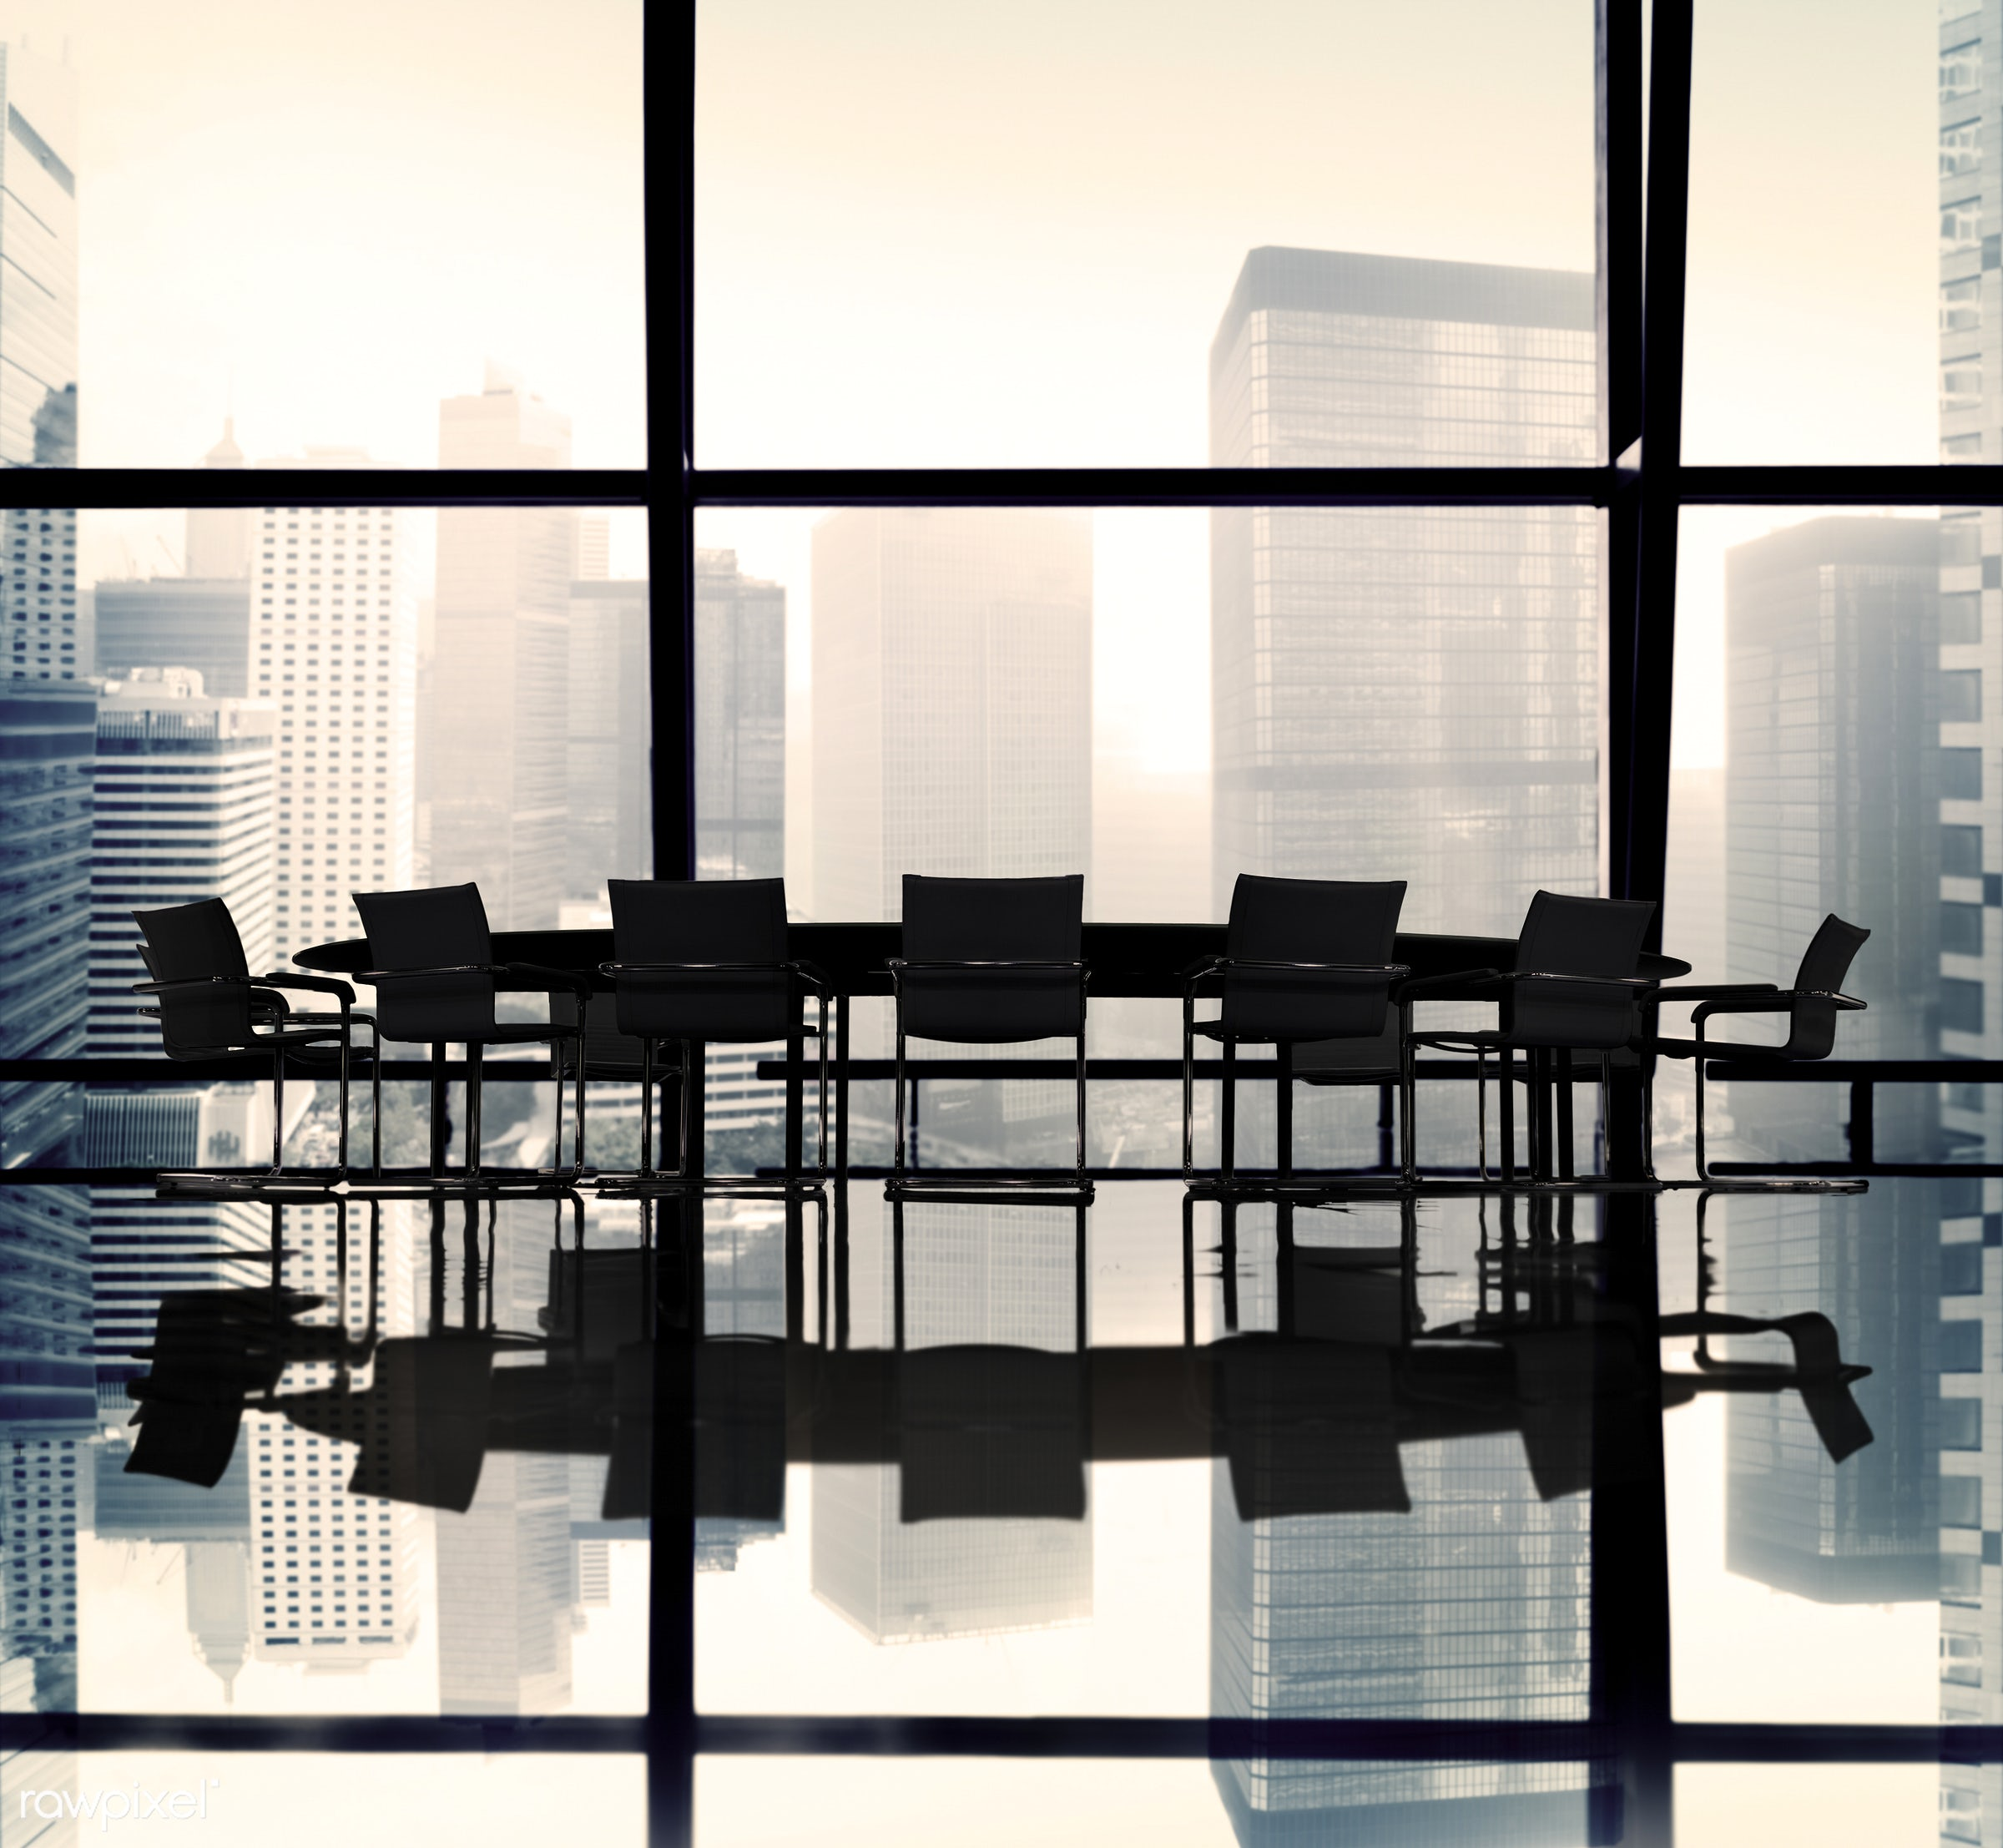 nobody, backlit, board room, buildings, chairs, city, cityscape, conference table, group of objects, indoors, meeting table...